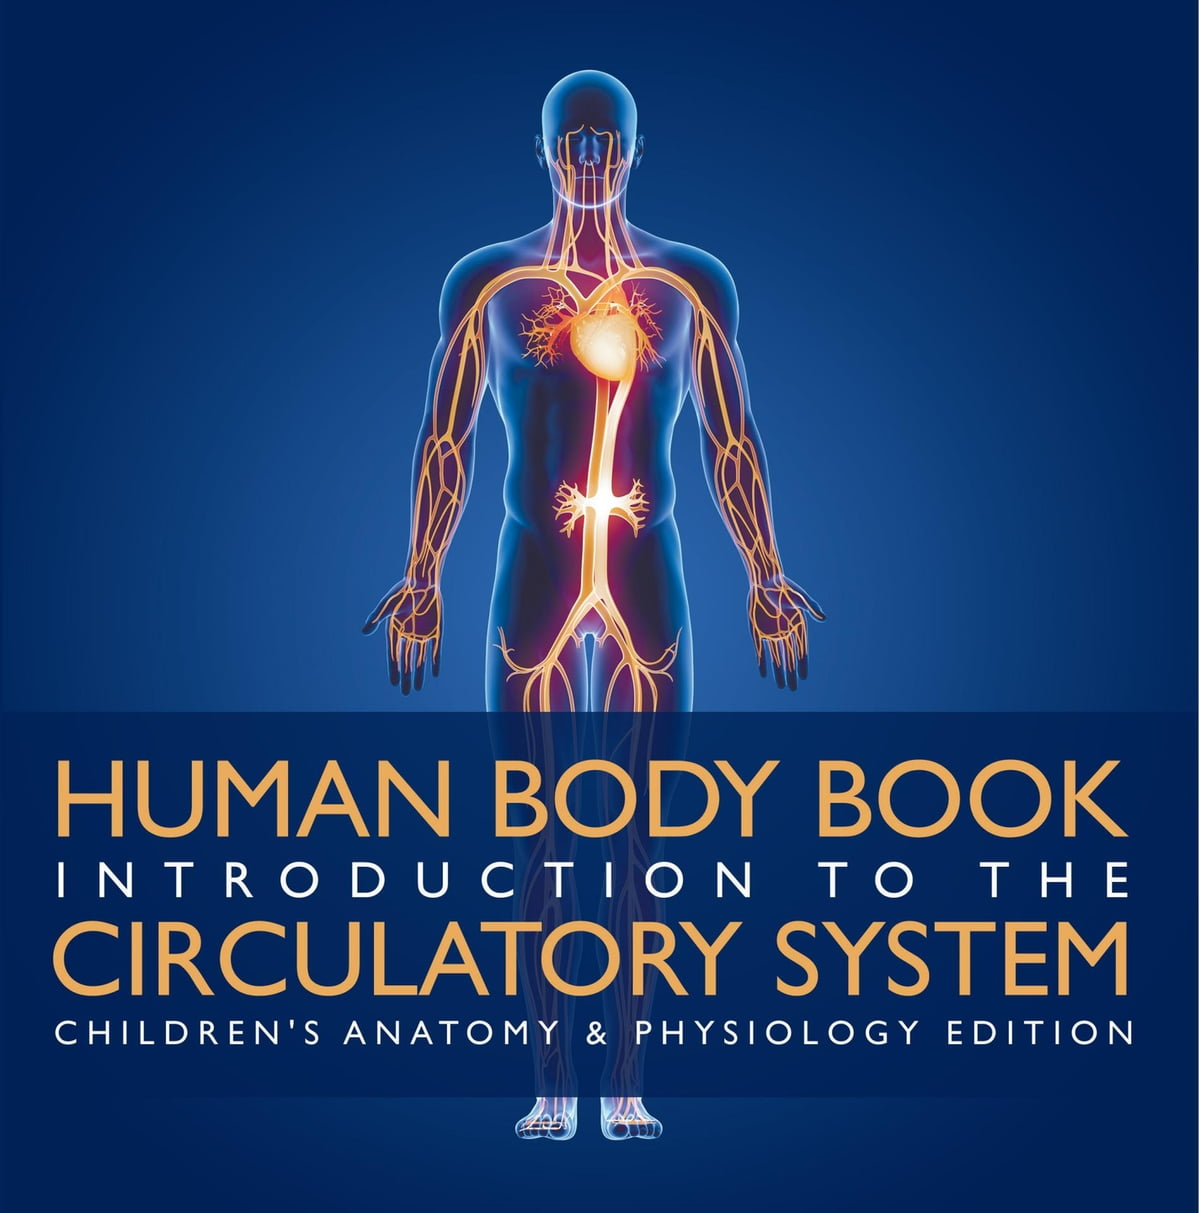 Human Body Book | Introduction to the Circulatory System ...